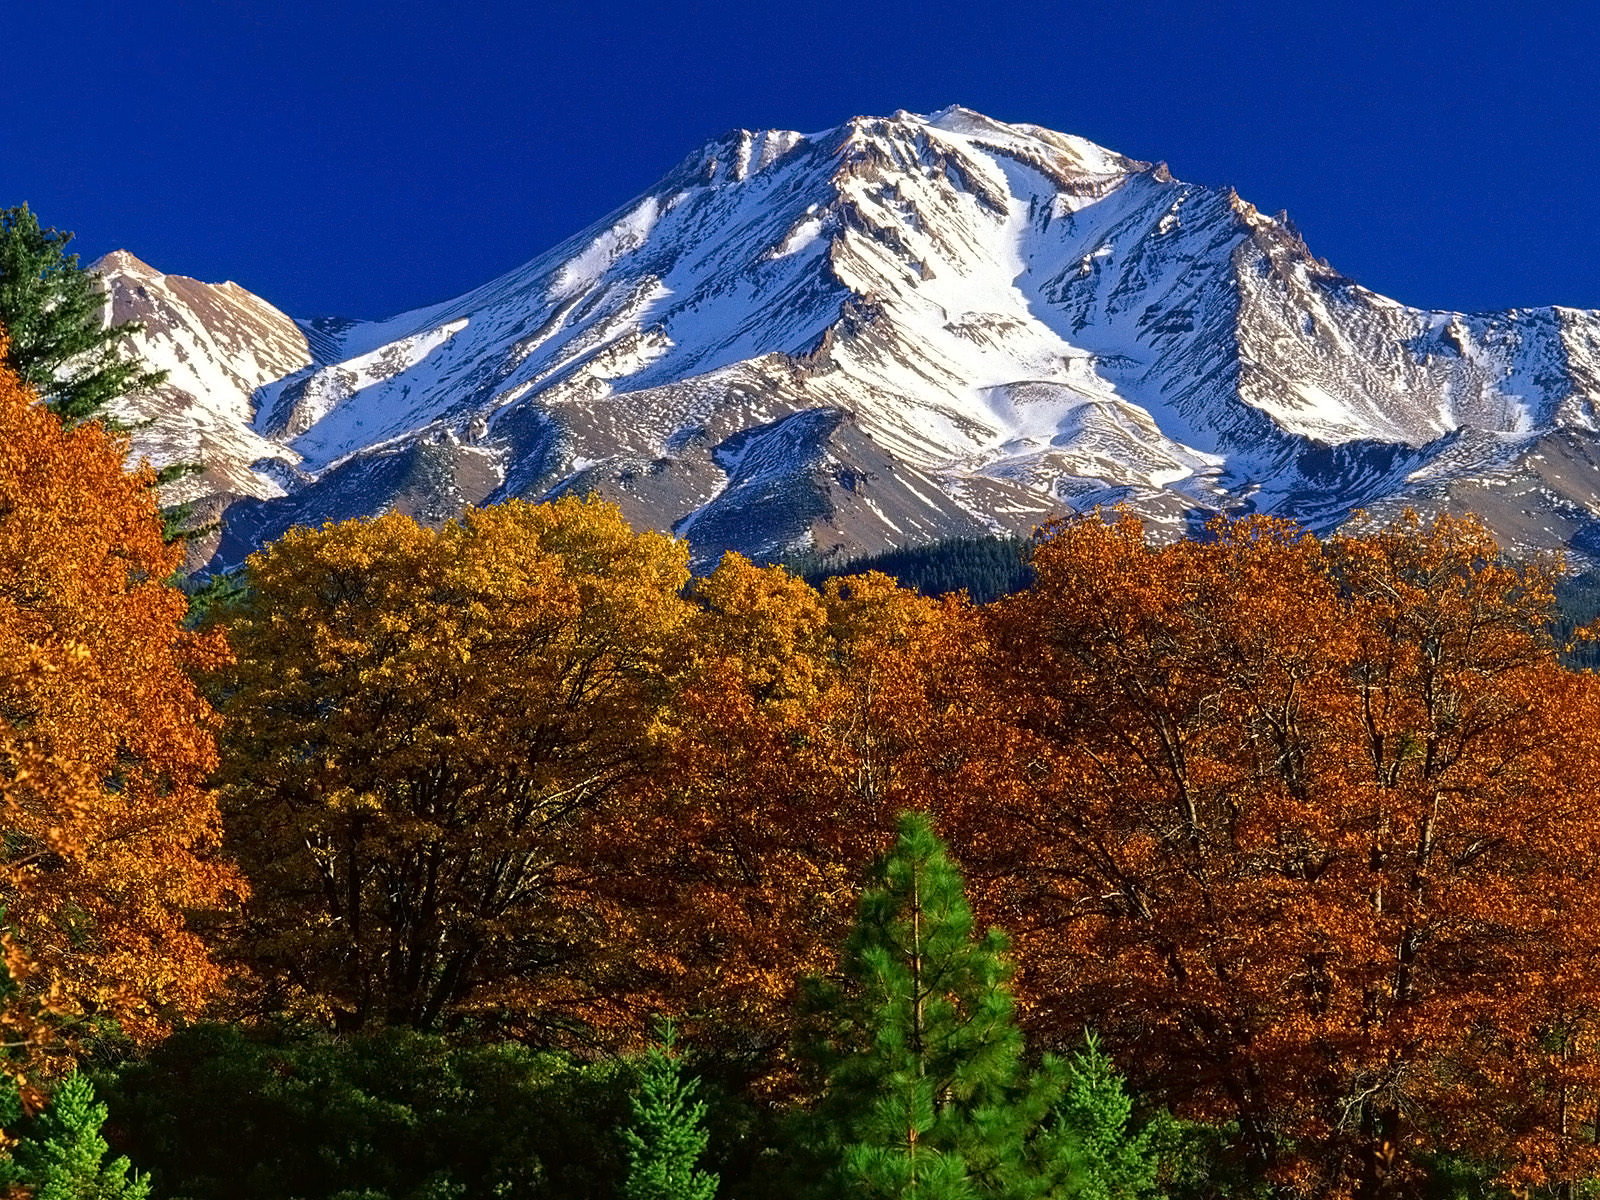 Mount Shasta, one of the volcanoes in the Land of Fire, has a snow cap on its tip year around because of its high altitude.